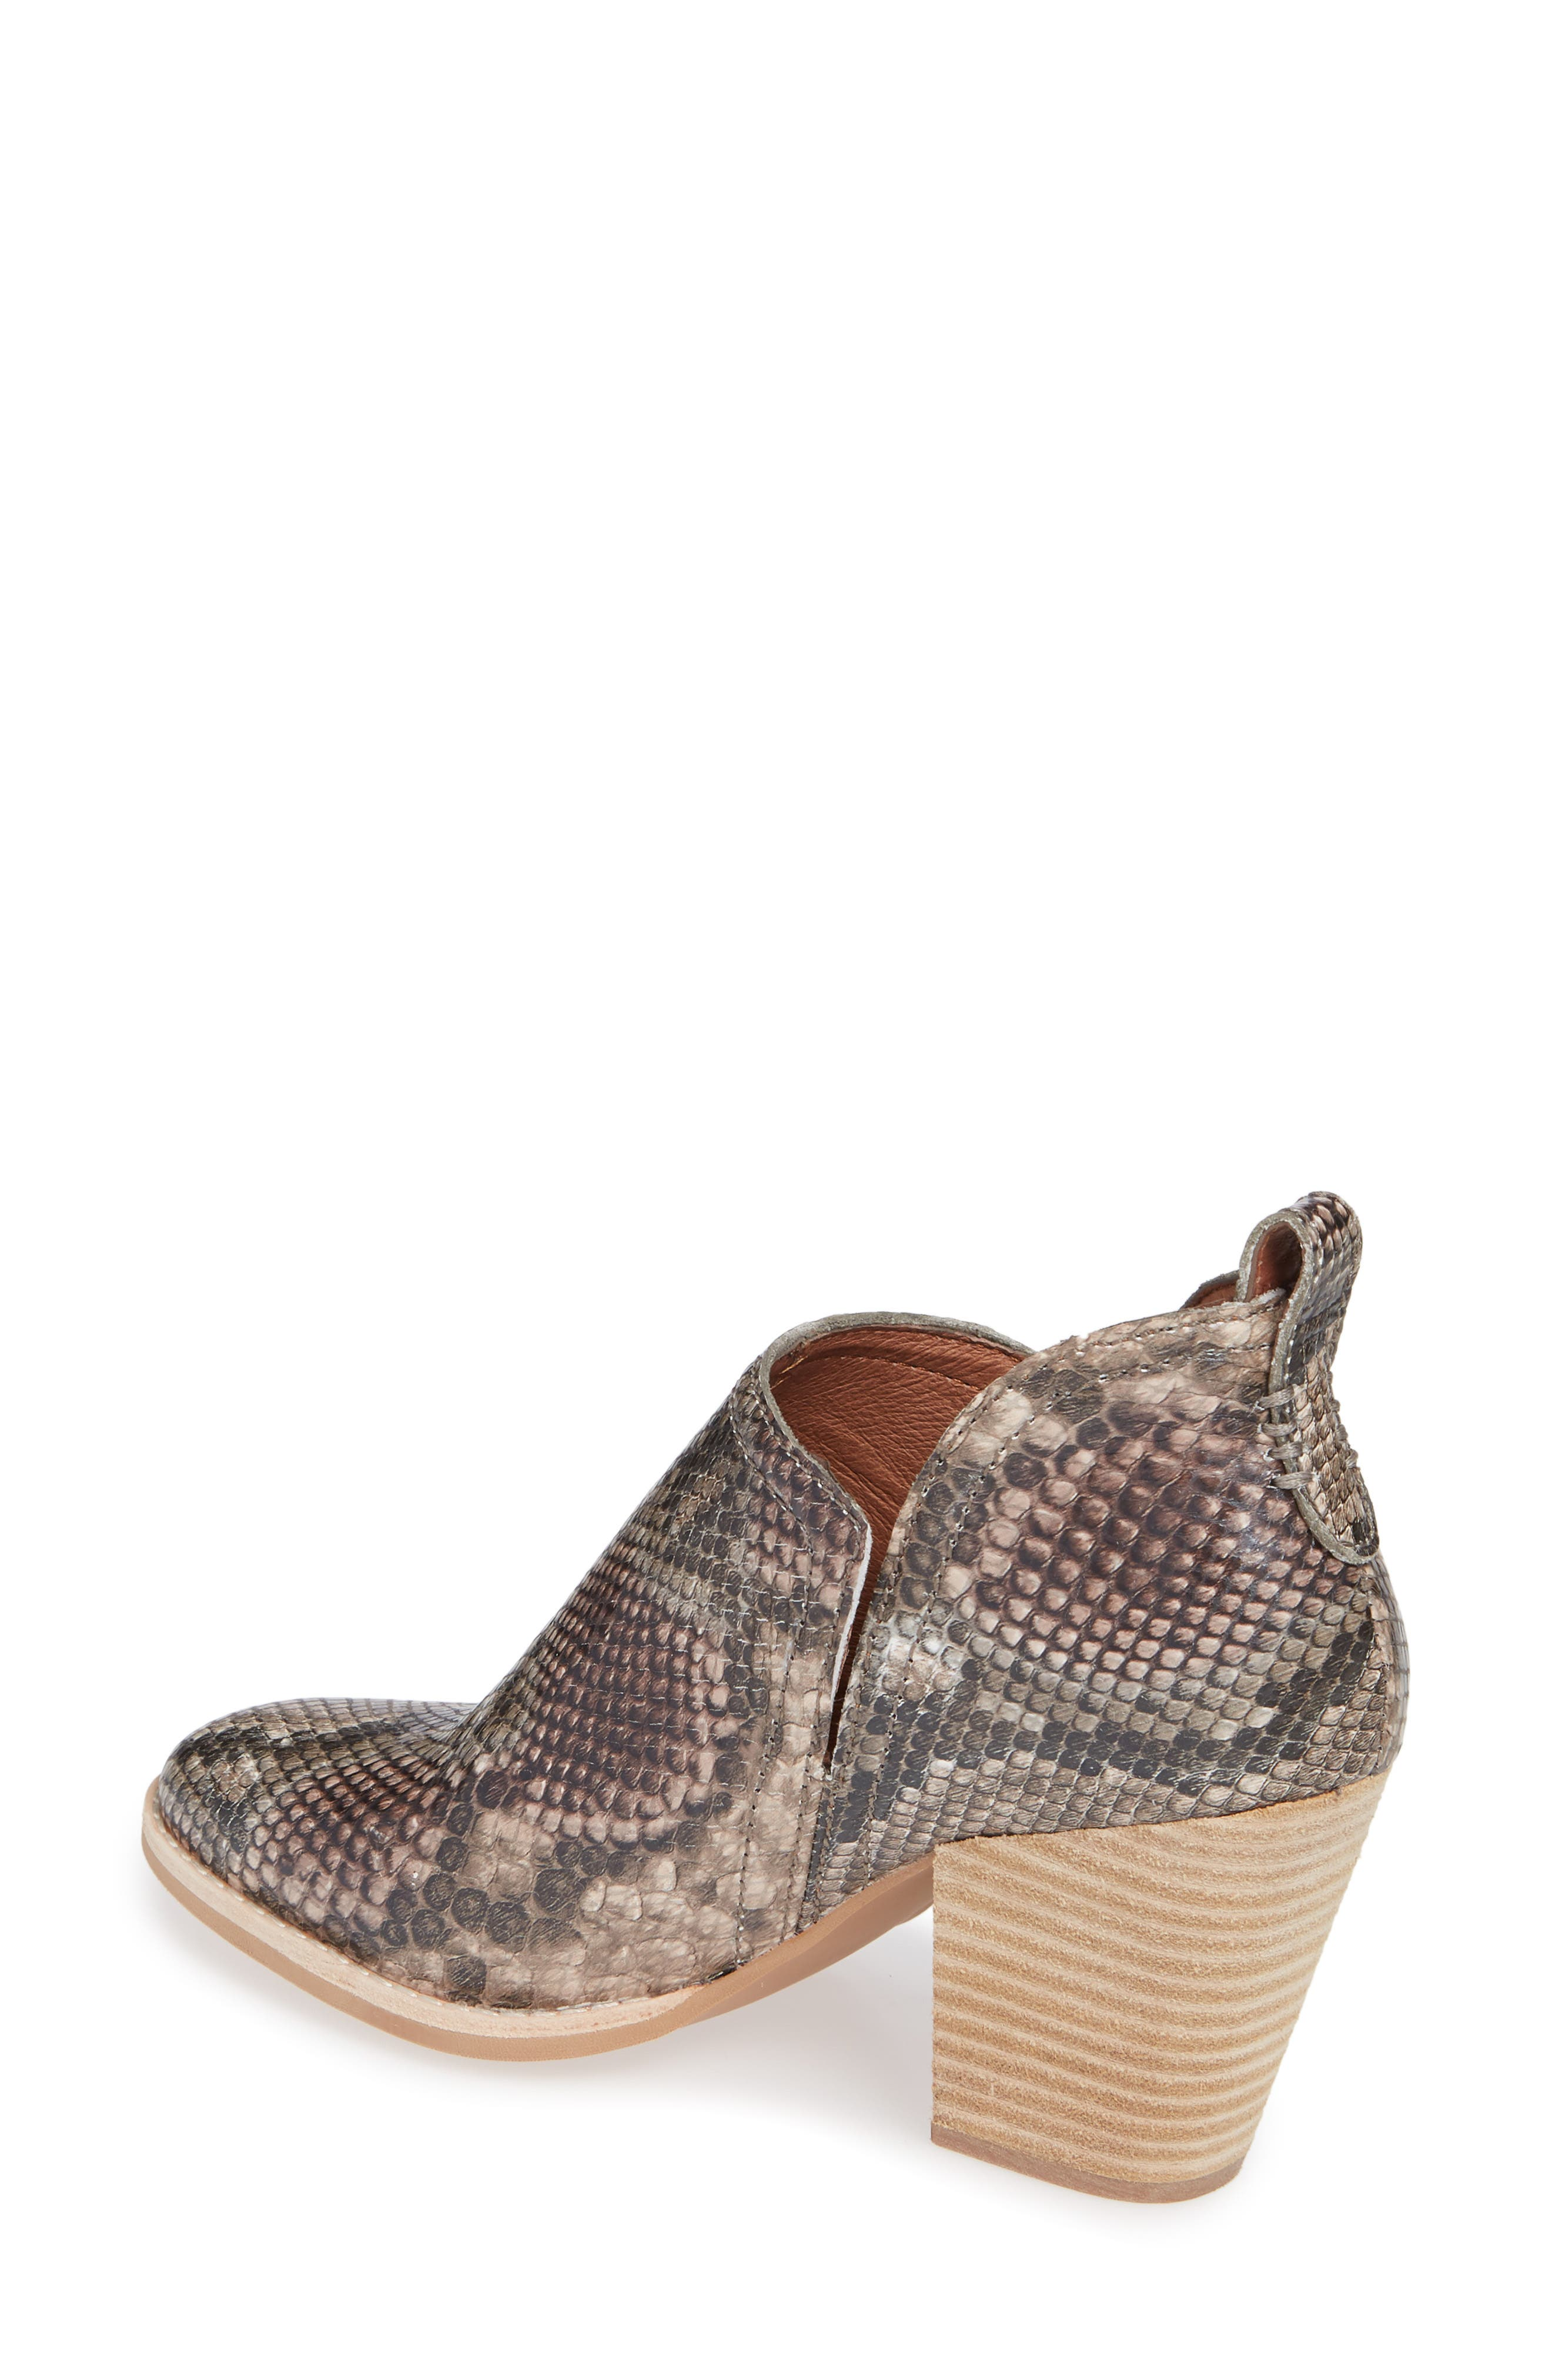 Rosalee Bootie,                             Alternate thumbnail 2, color,                             TAUPE SNAKE PRINT MULTI